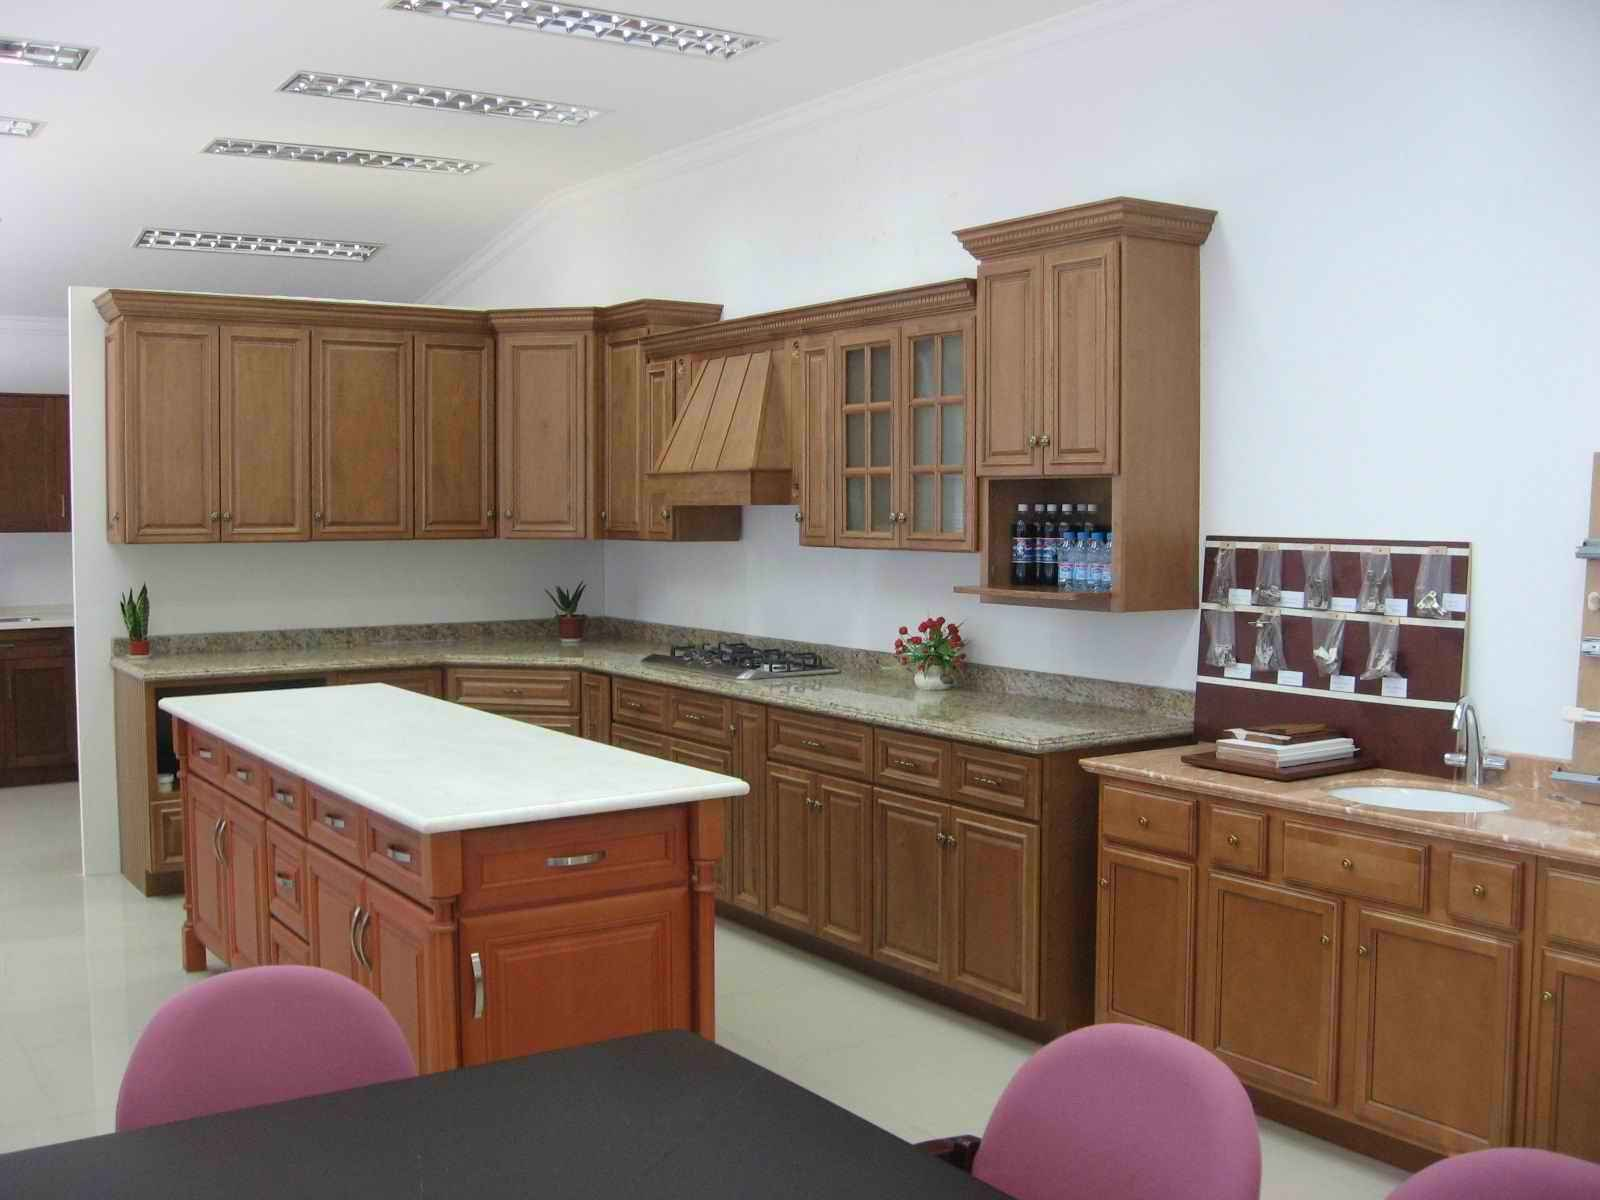 Cheap cabinets for kitchens shopping tips for Cheap kitchen cupboards